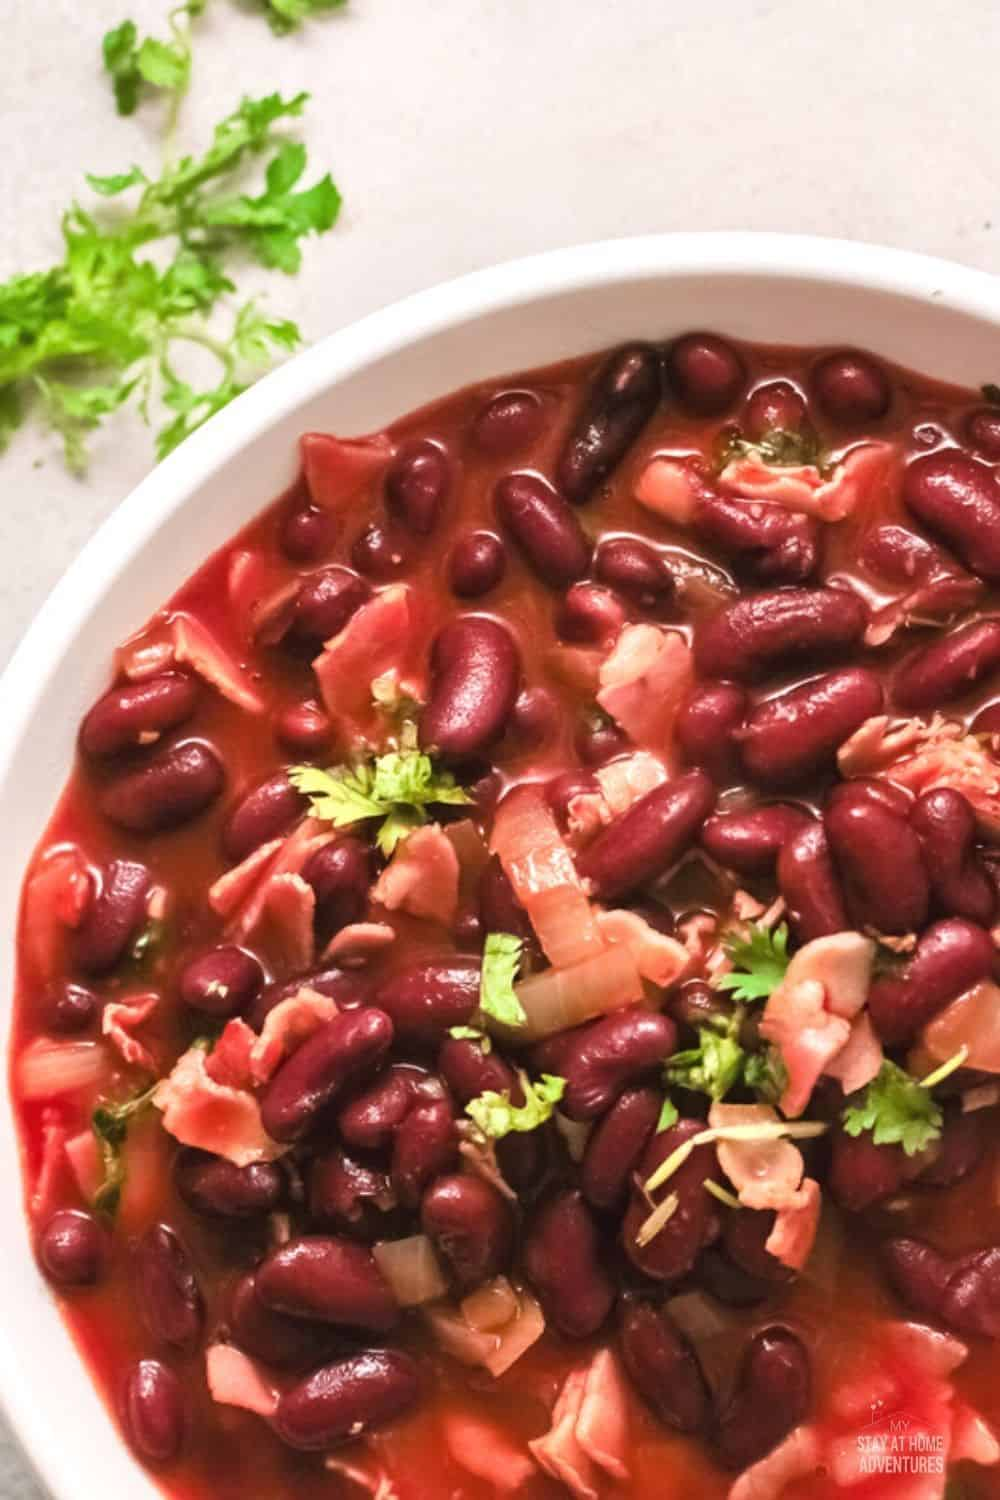 Frijoles charros are pinto beans stewed in garlic, onion, tomatoes, peppers, along with whatever other ingredients popular in Mexico. via @mystayathome